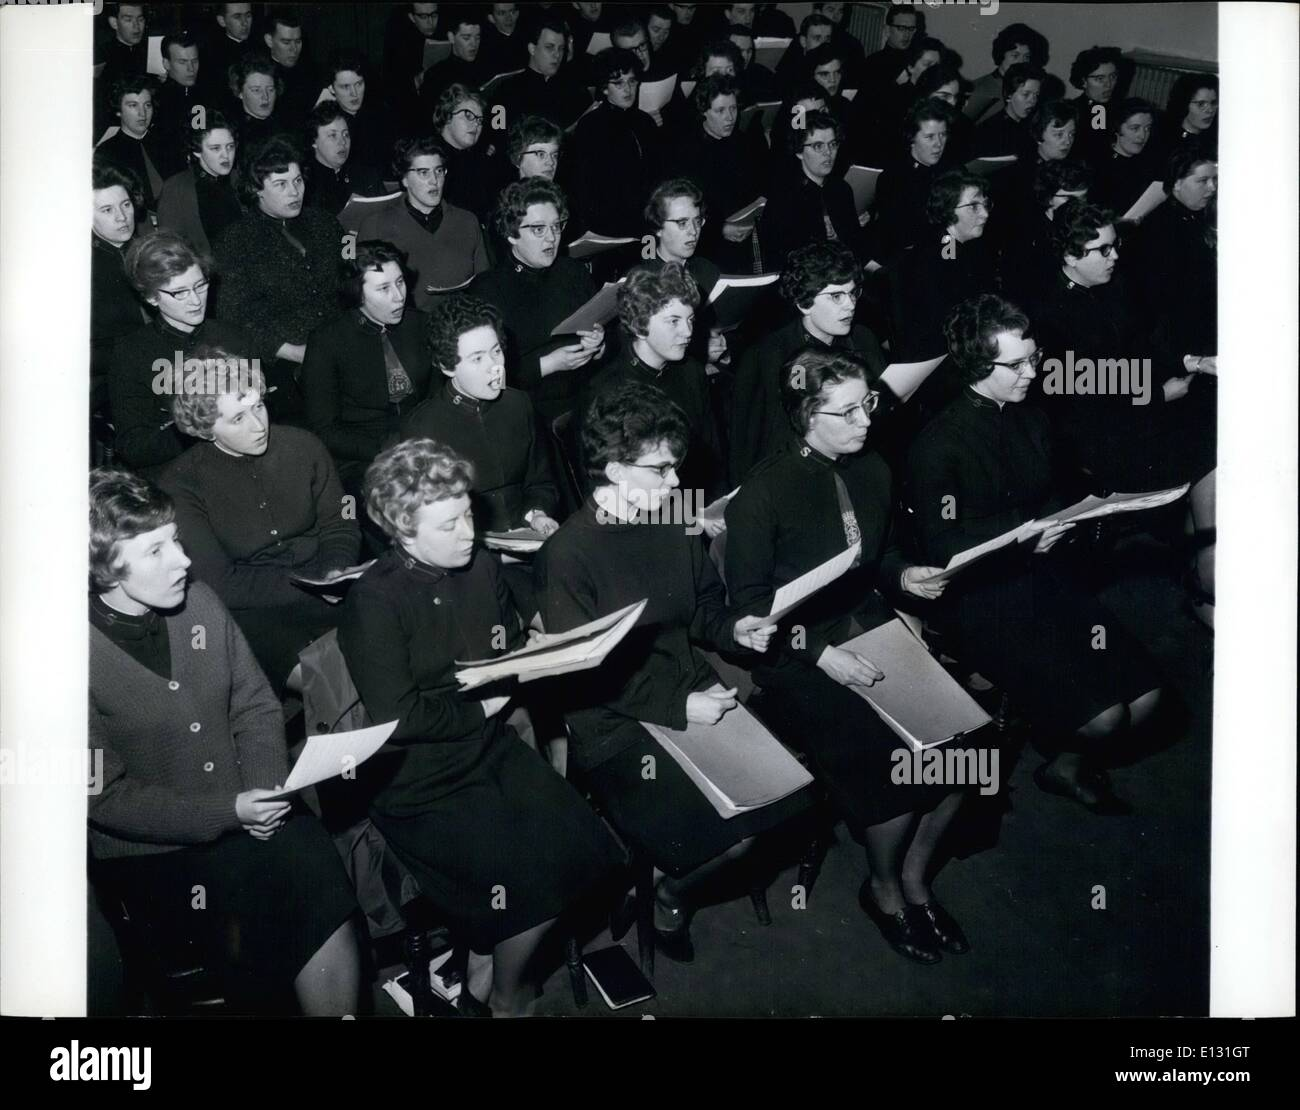 Feb. 26, 2012 - Hymn singing in the Assembly Hall of the Salvation Army's training college in London. - Stock Image